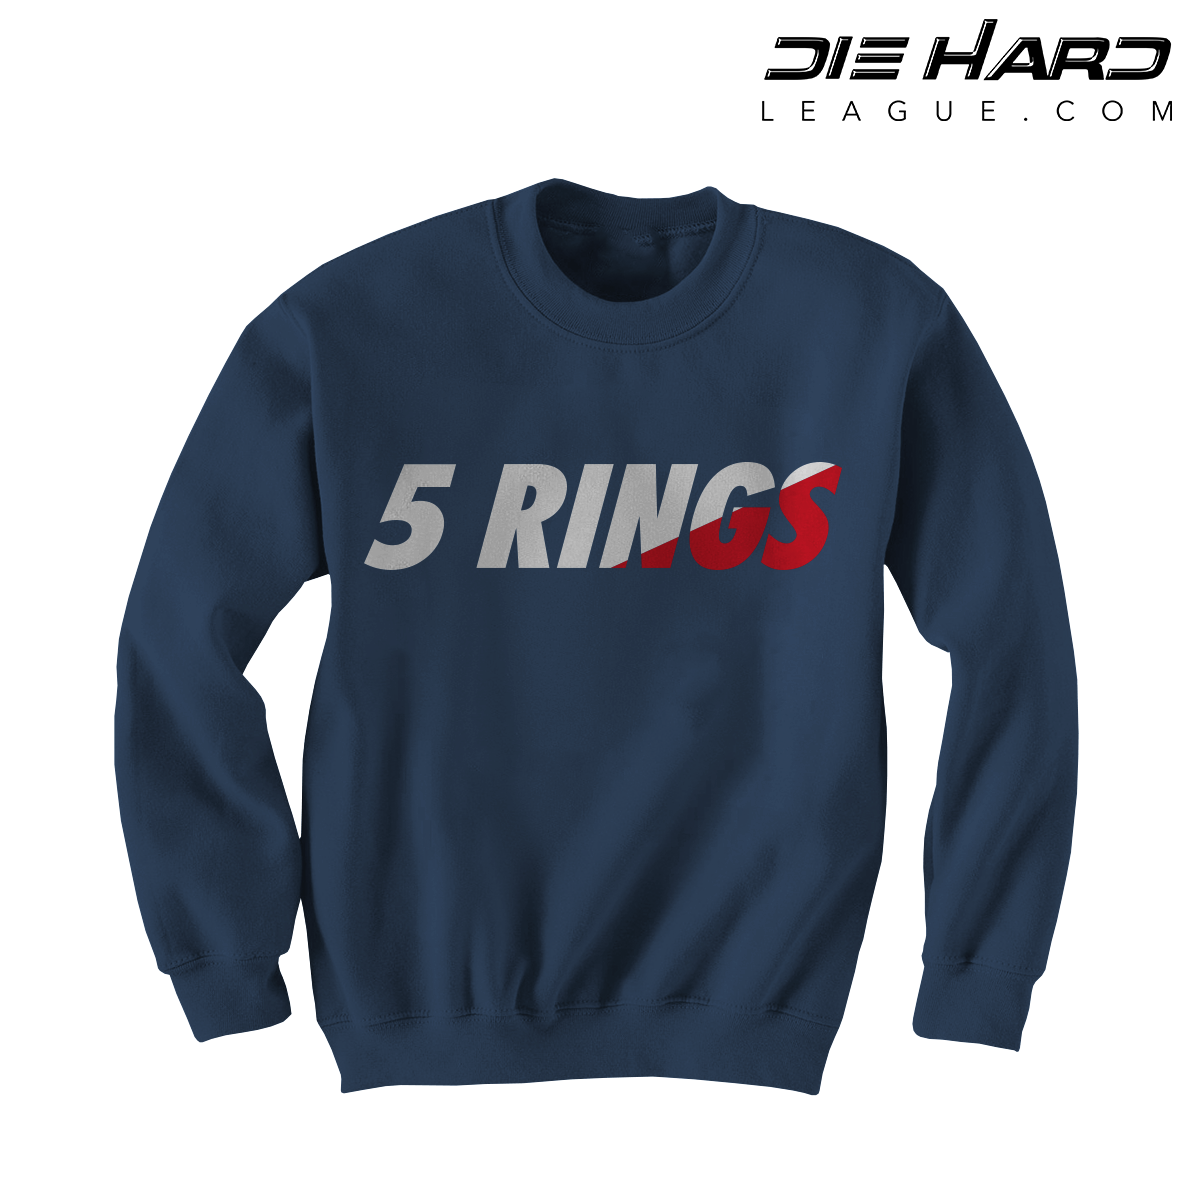 official photos c28f6 6dcb2 New England Patriots Crewneck - 5 Rings Navy Sweater